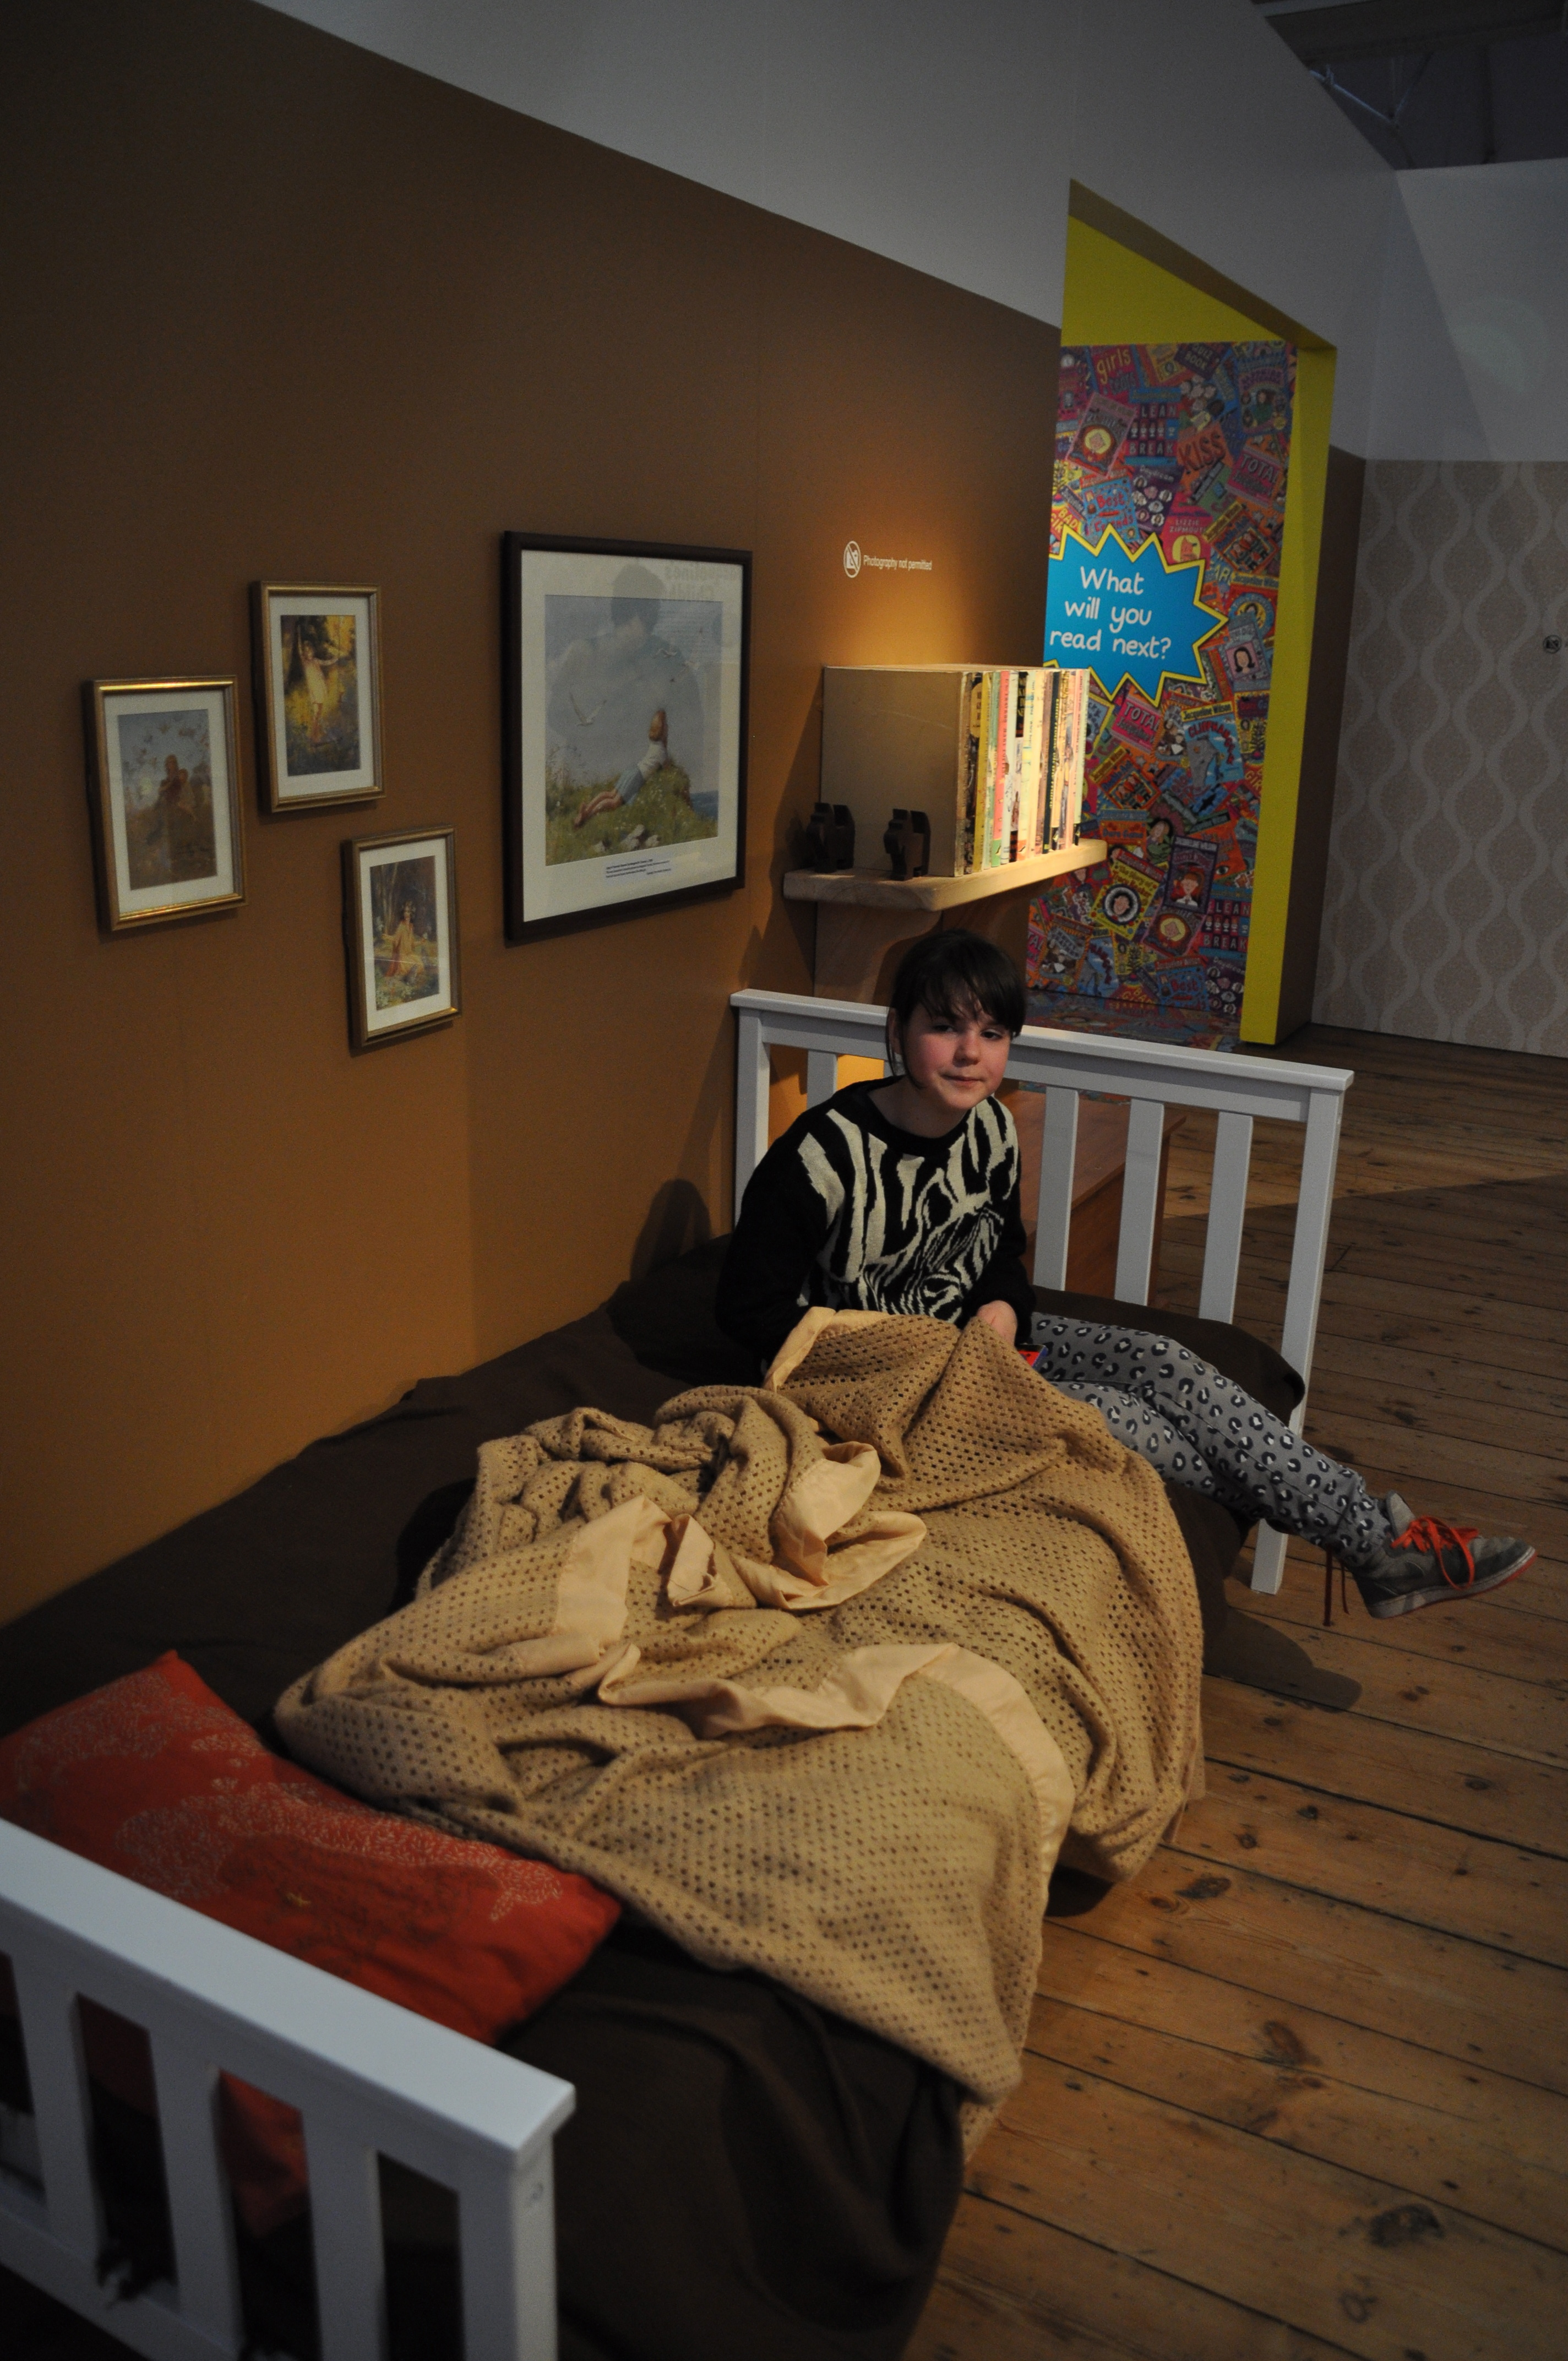 A bed in an exhibition? Perfect for the tweenager!